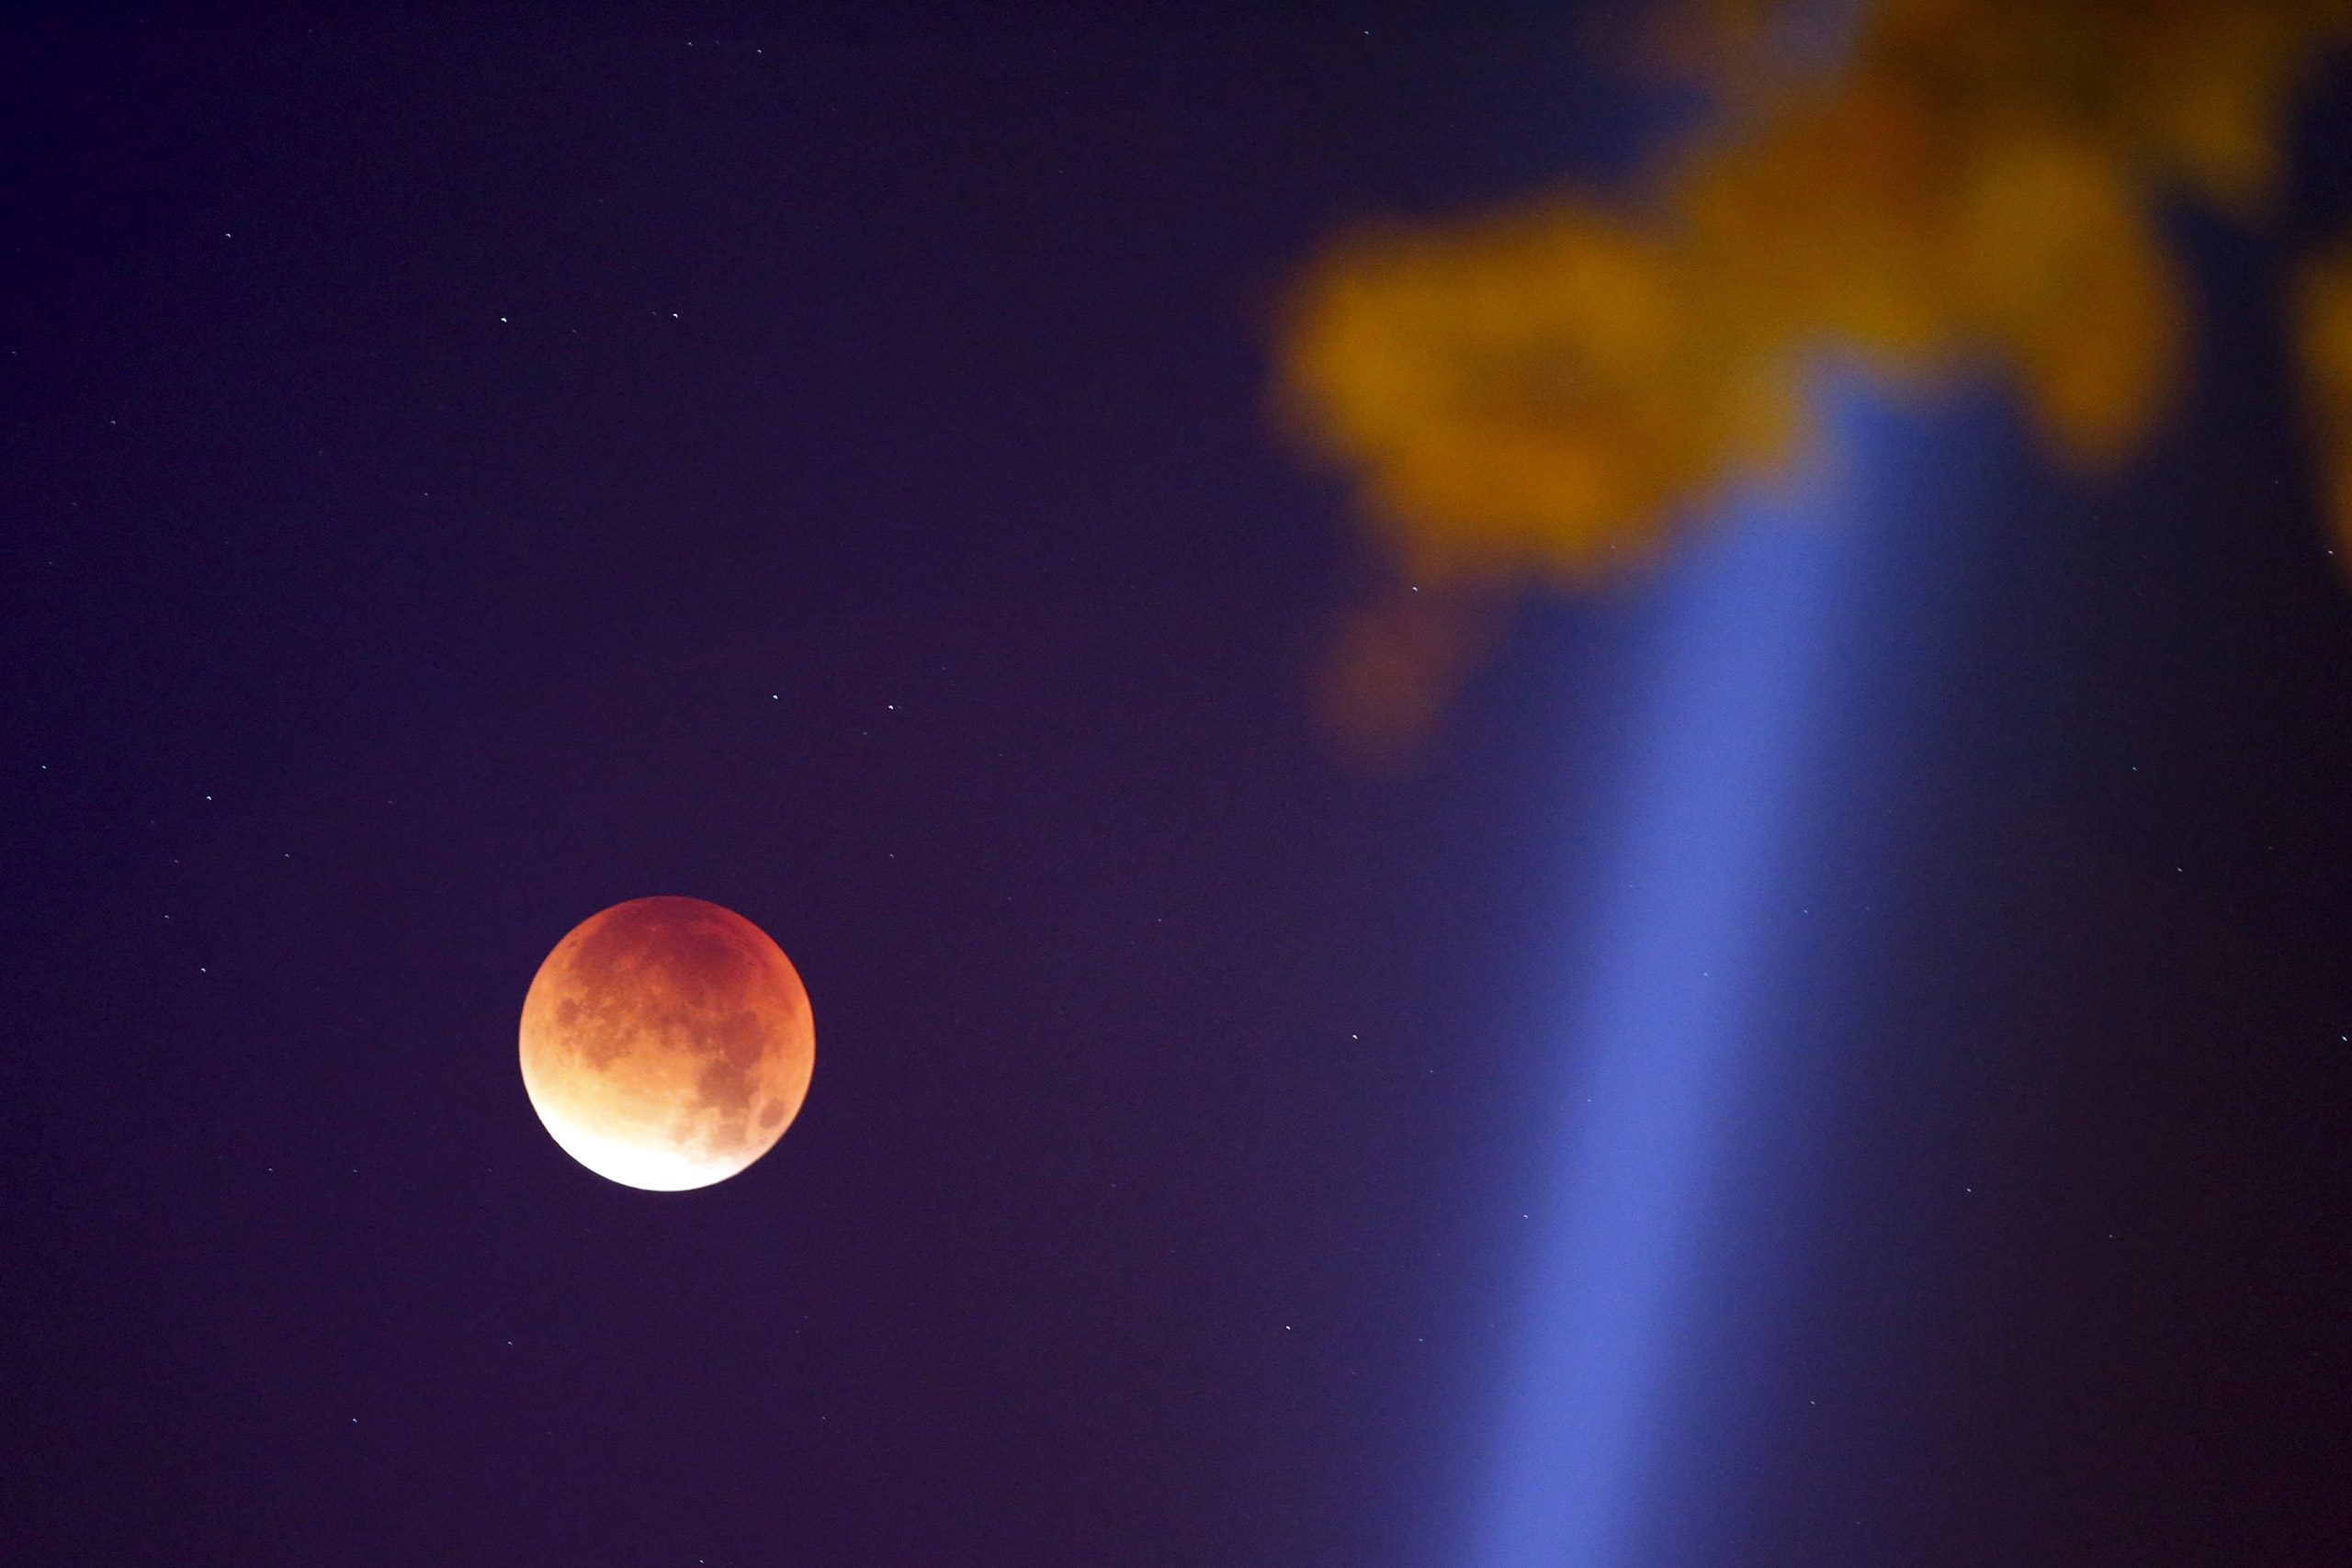 The Supermoon appears red as it is covered by the Earth's shadow during the total lunar eclipse over Paris on Sept. 28, 2015.